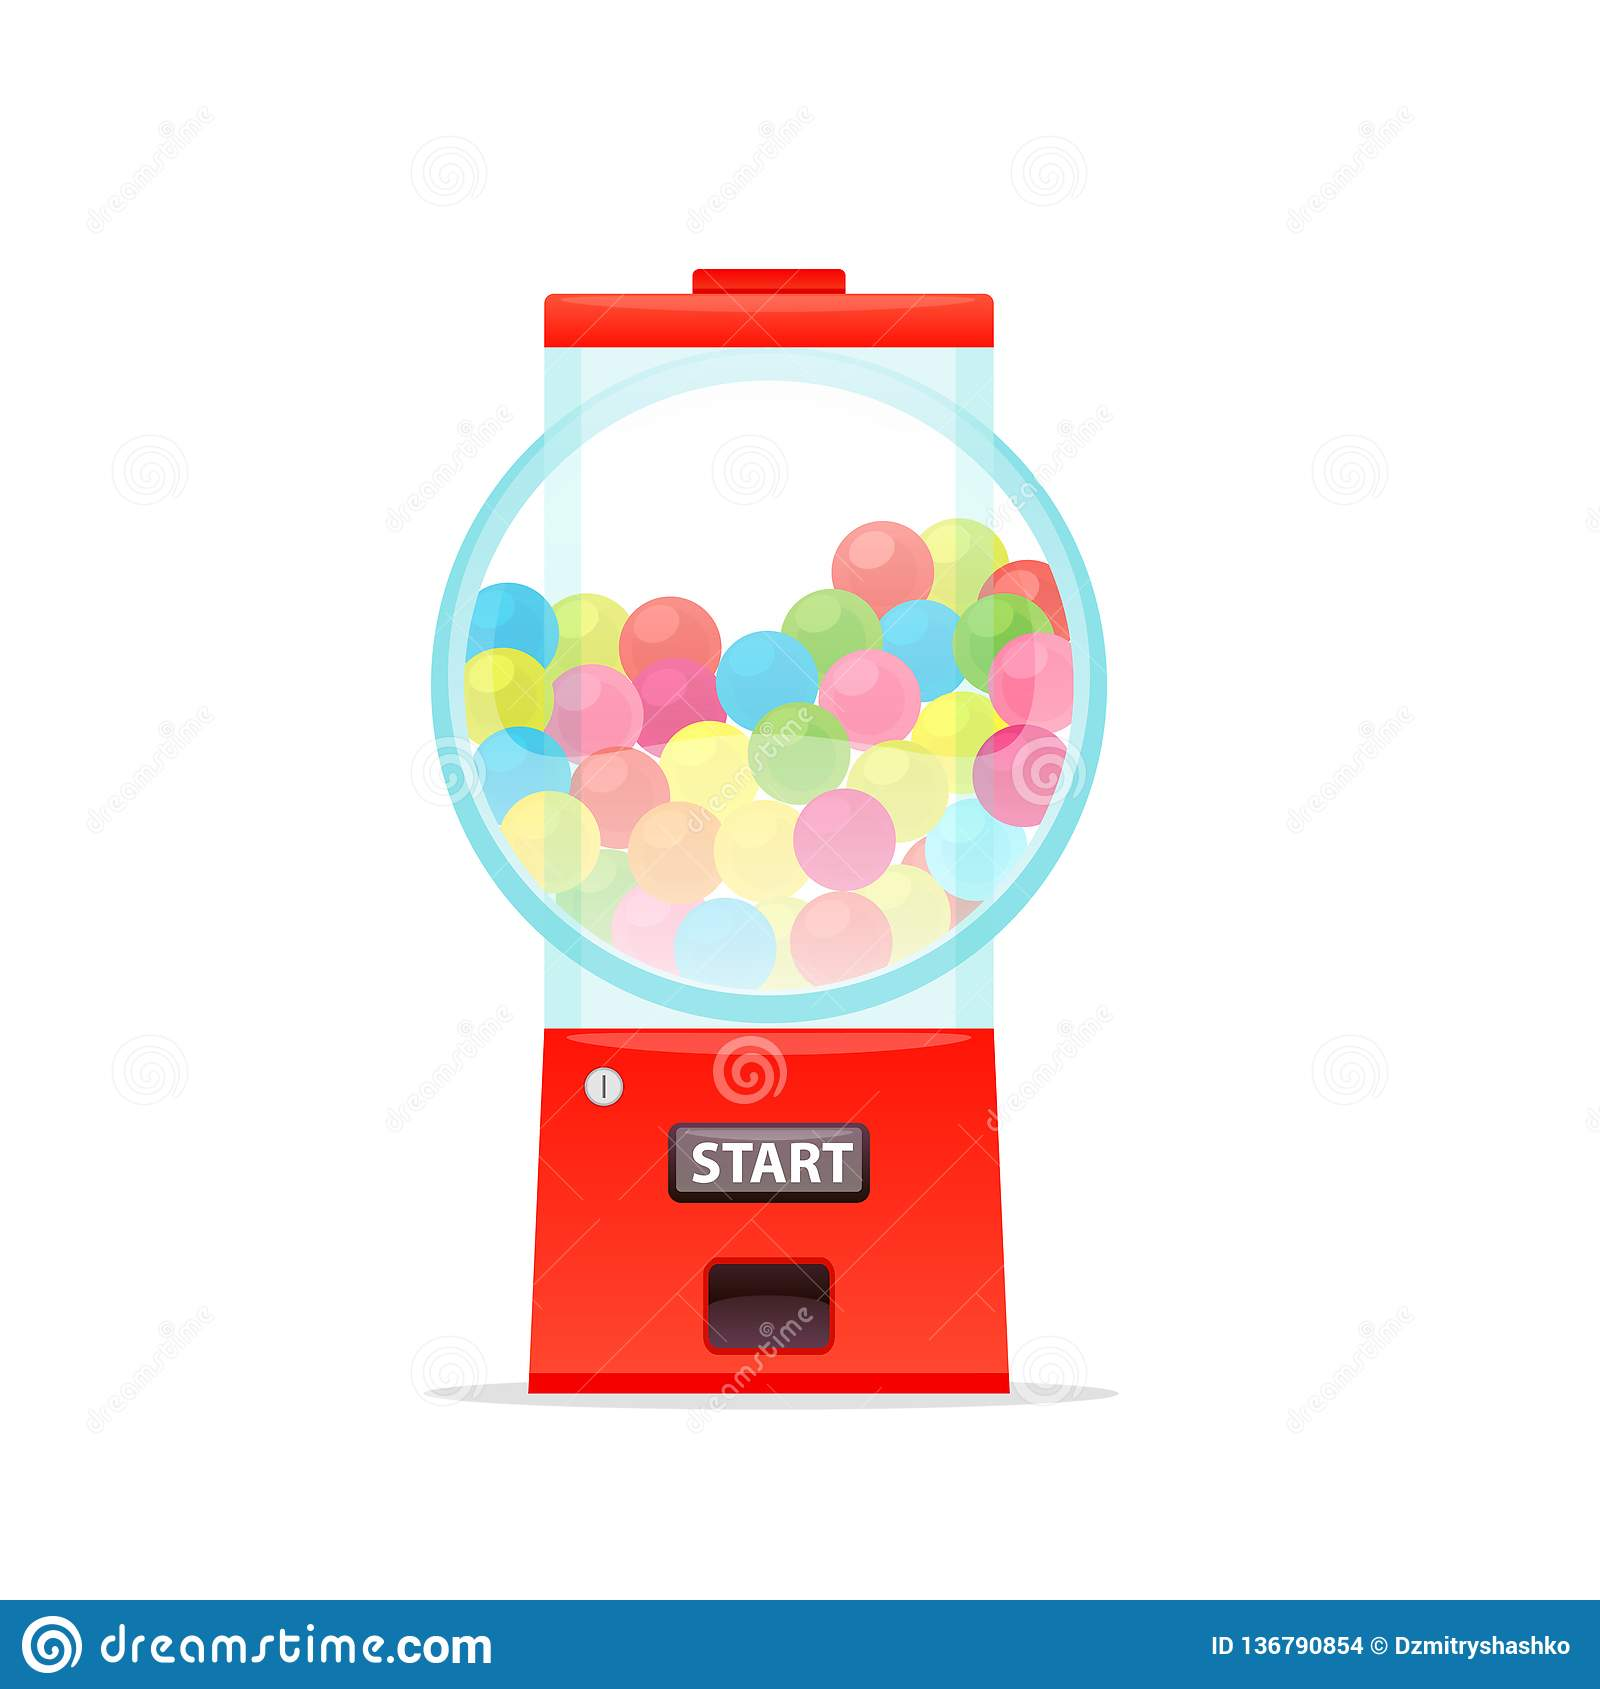 hight resolution of gumball machine candy dispenser icon vending clipart isolated on white background